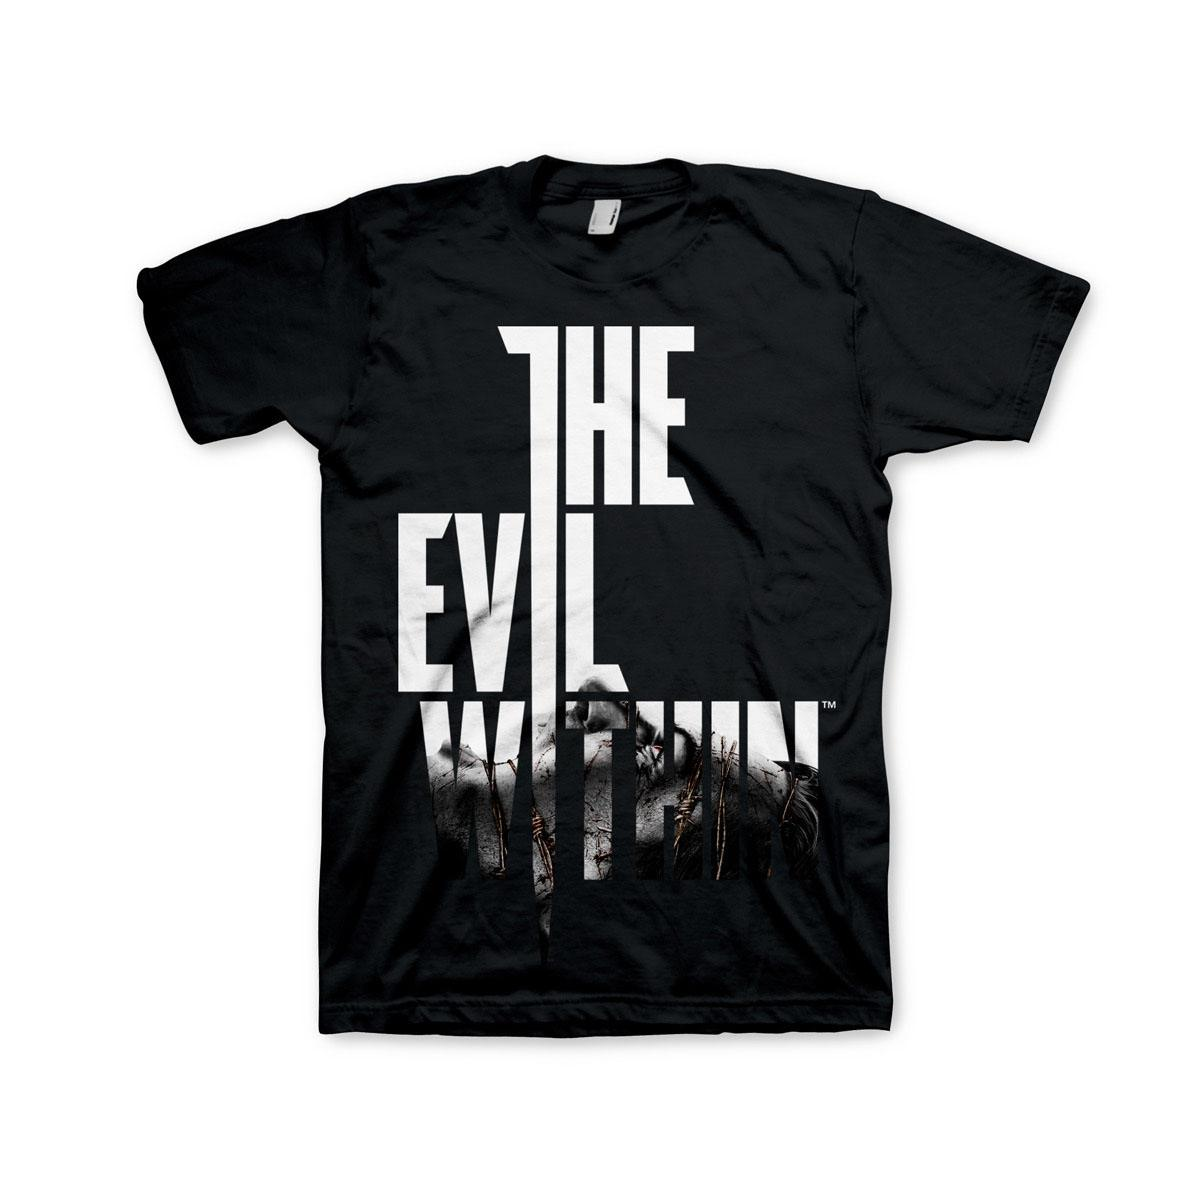 The Evil Within T-Shirt Black Text at Front Size L